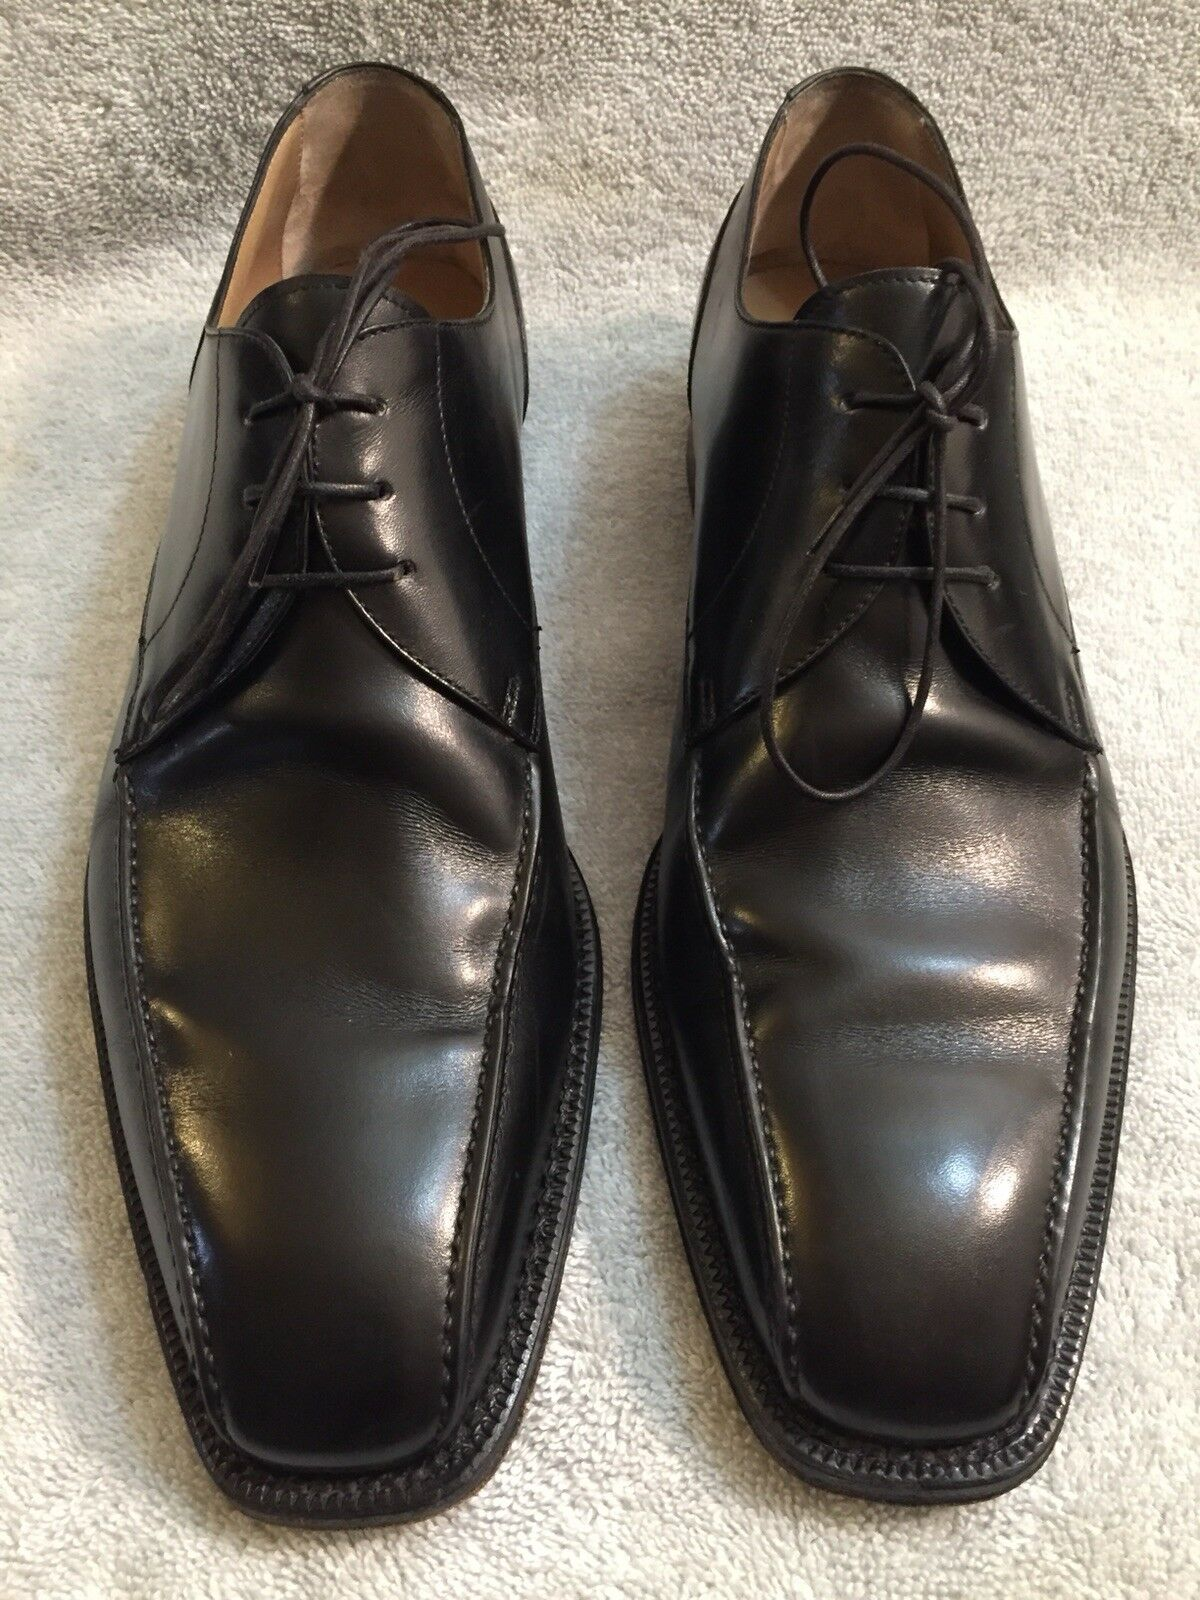 TAKE 6 By Kashani A Mano Lavorazione Hand Made In  Oxferd Men's shoes Sz 11